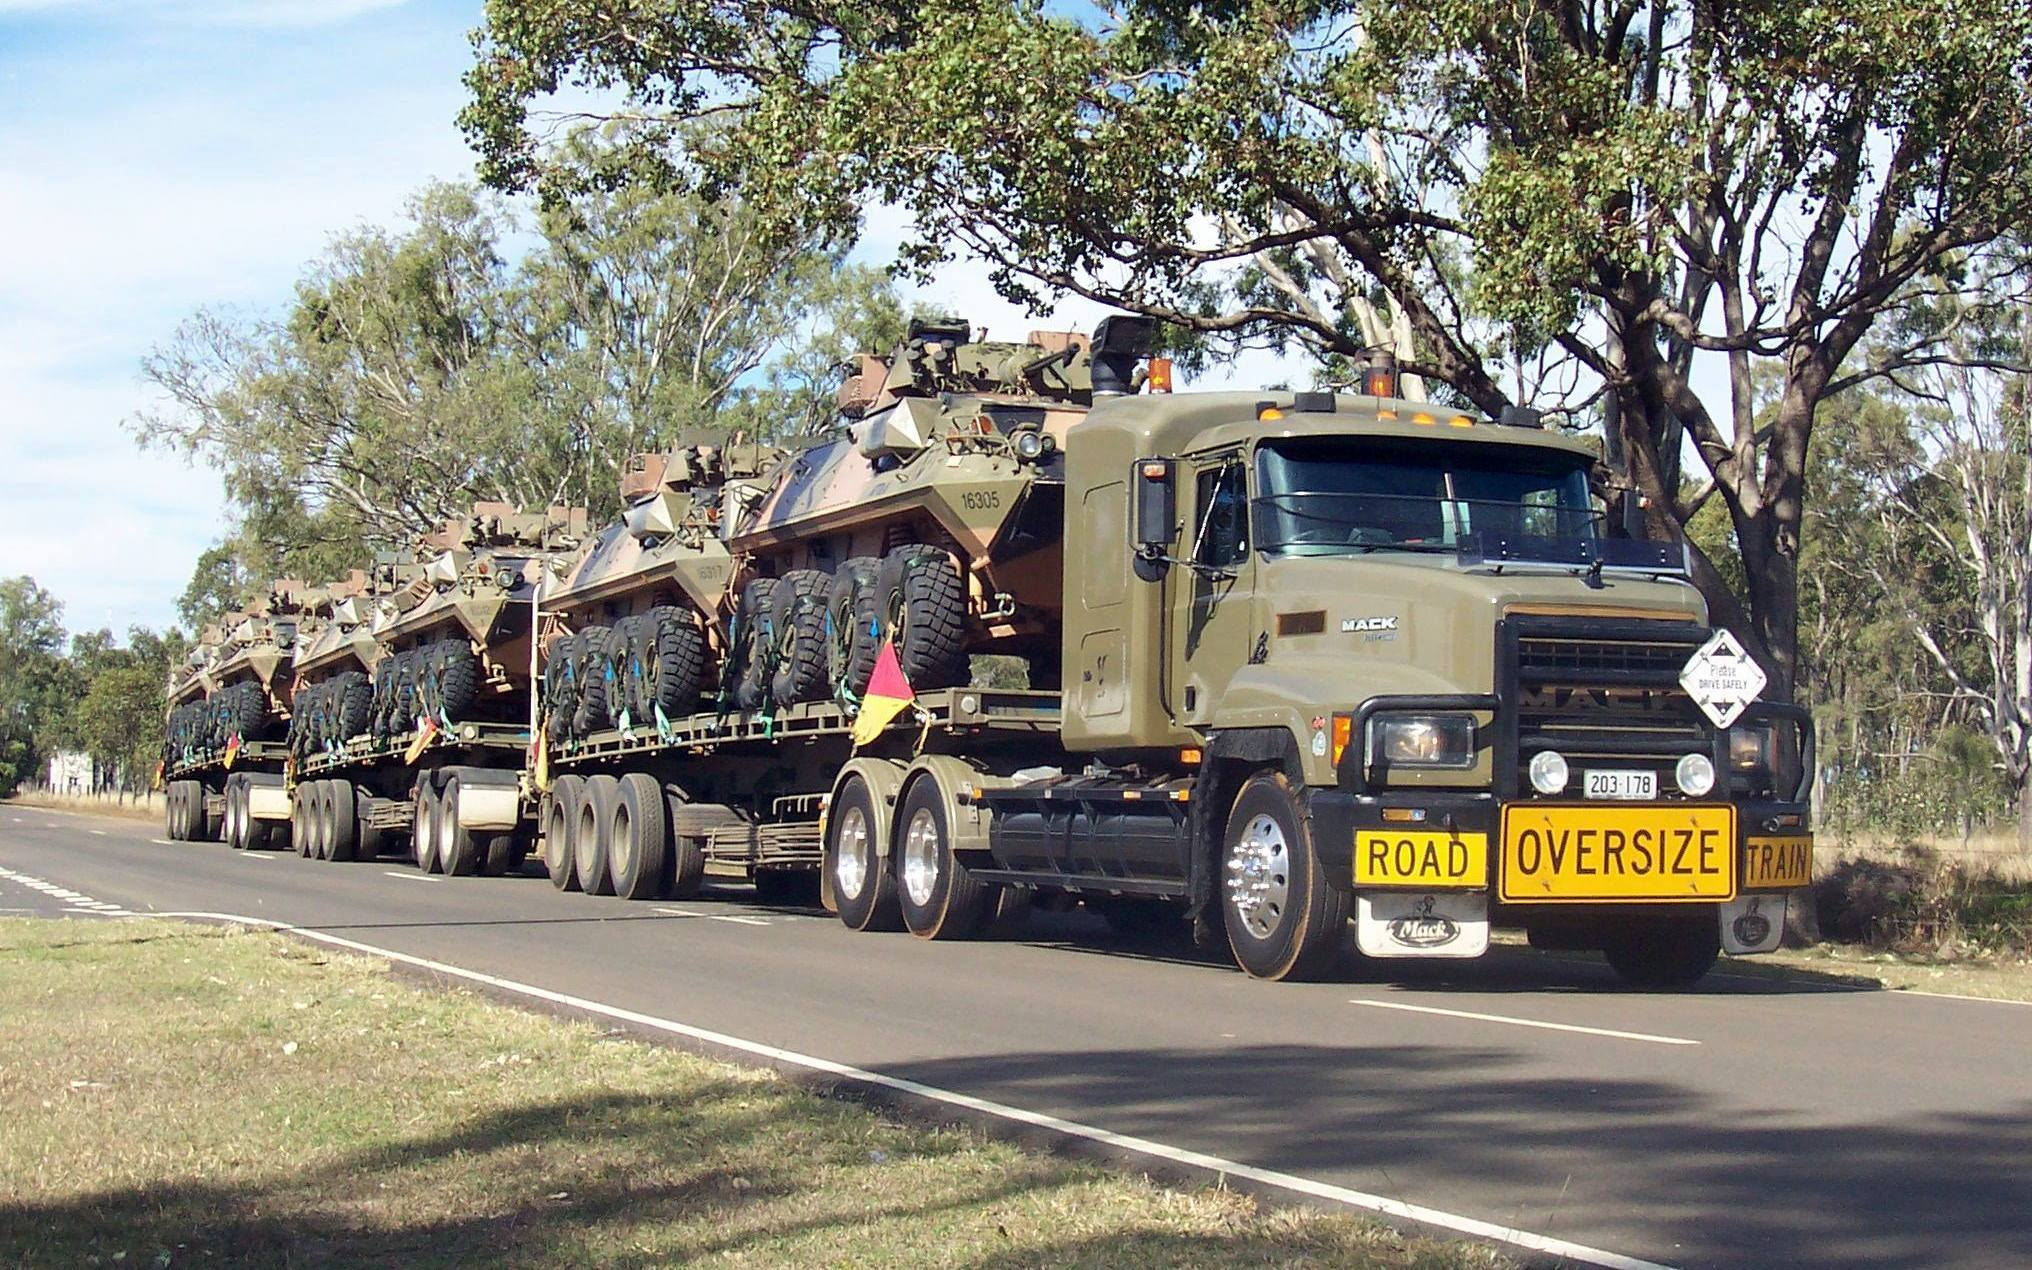 rc trucks sale with File Ract Mack Road Train Carrying 6 Aslavs on Watch additionally DooDooStickySplatBallSqueezeToy moreover Ritewing DRAK Now Shipping p 226 besides Watch likewise File Confederate States Proposed1 1861.